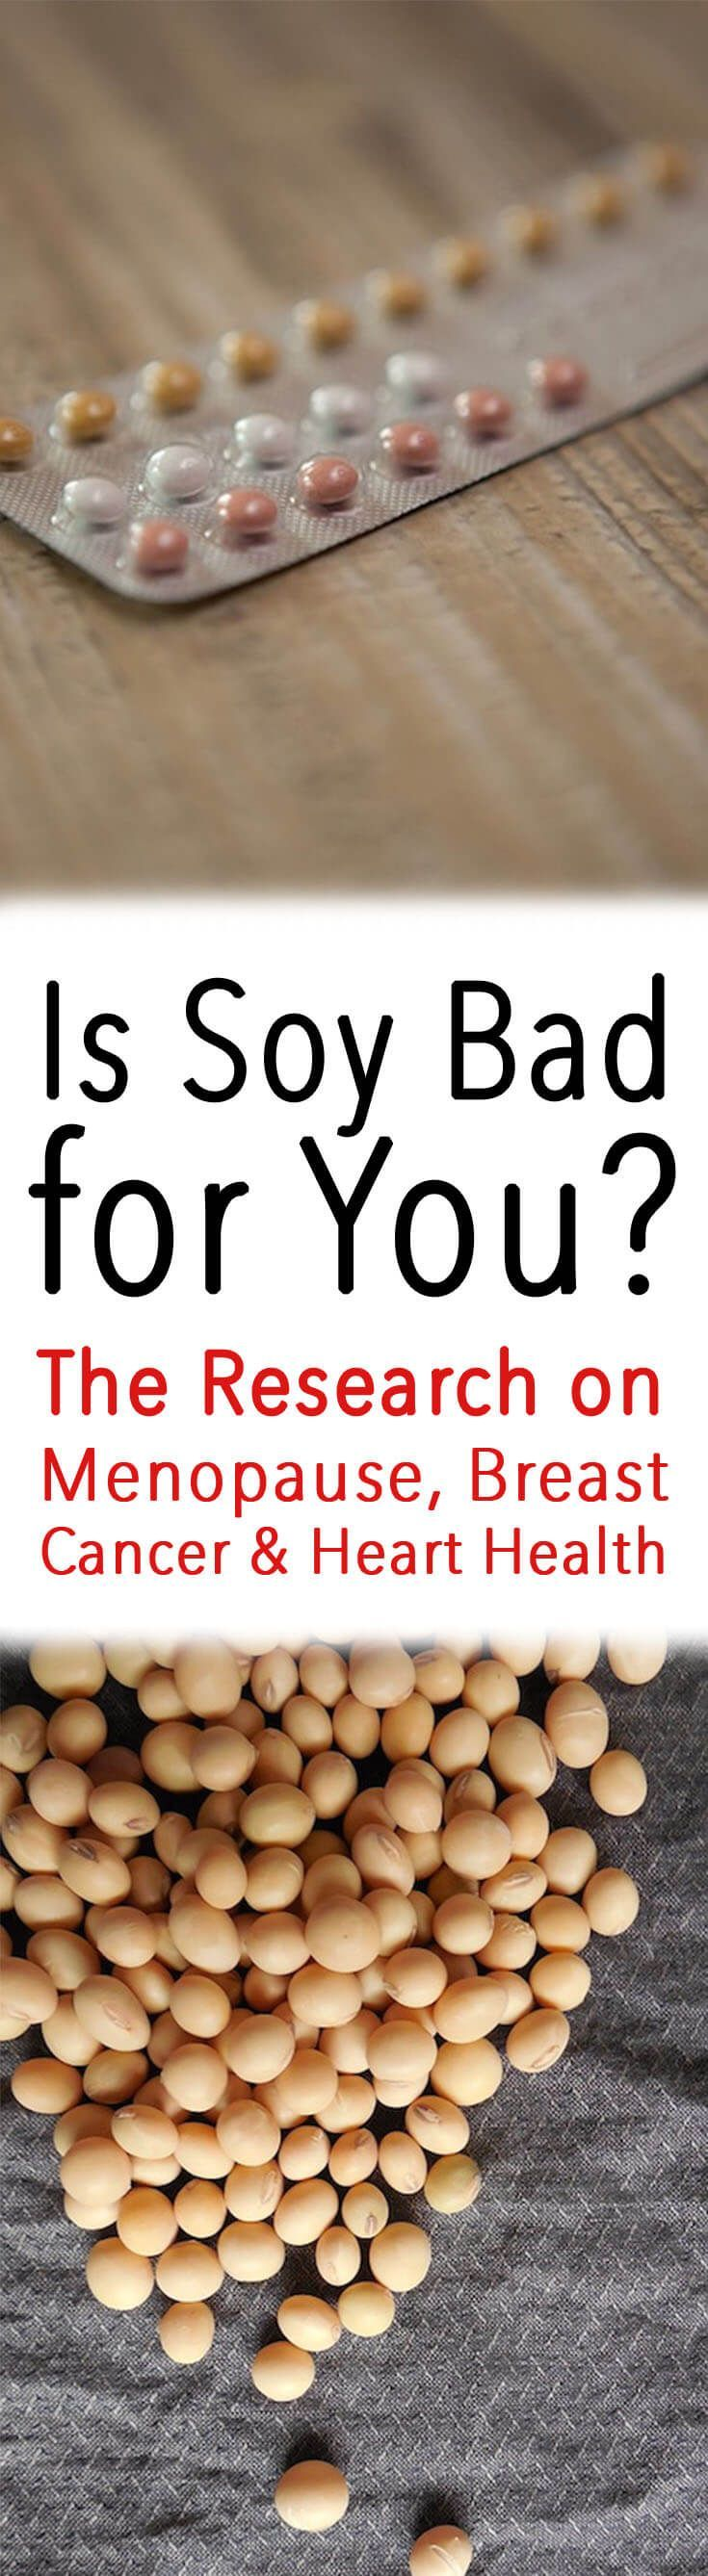 Menopausal Hormone Therapy and Cancer - National Cancer ...